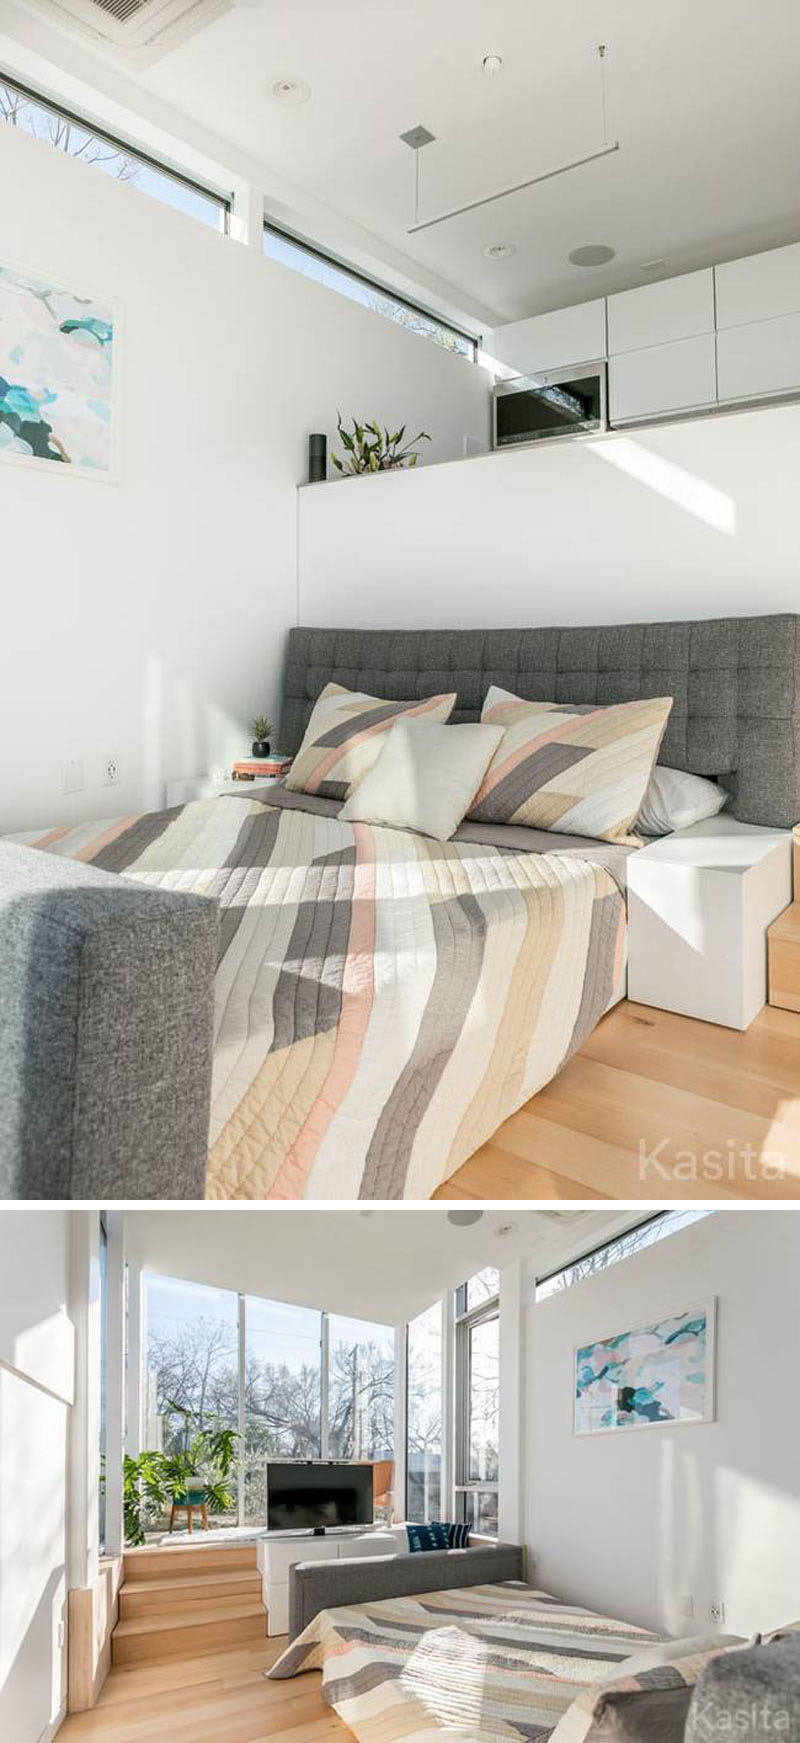 In this modern tiny house, the couch in the living room can be transformed into a queen-size bed by simply extending it out. Part of the couch frame now becomes bedside tables.